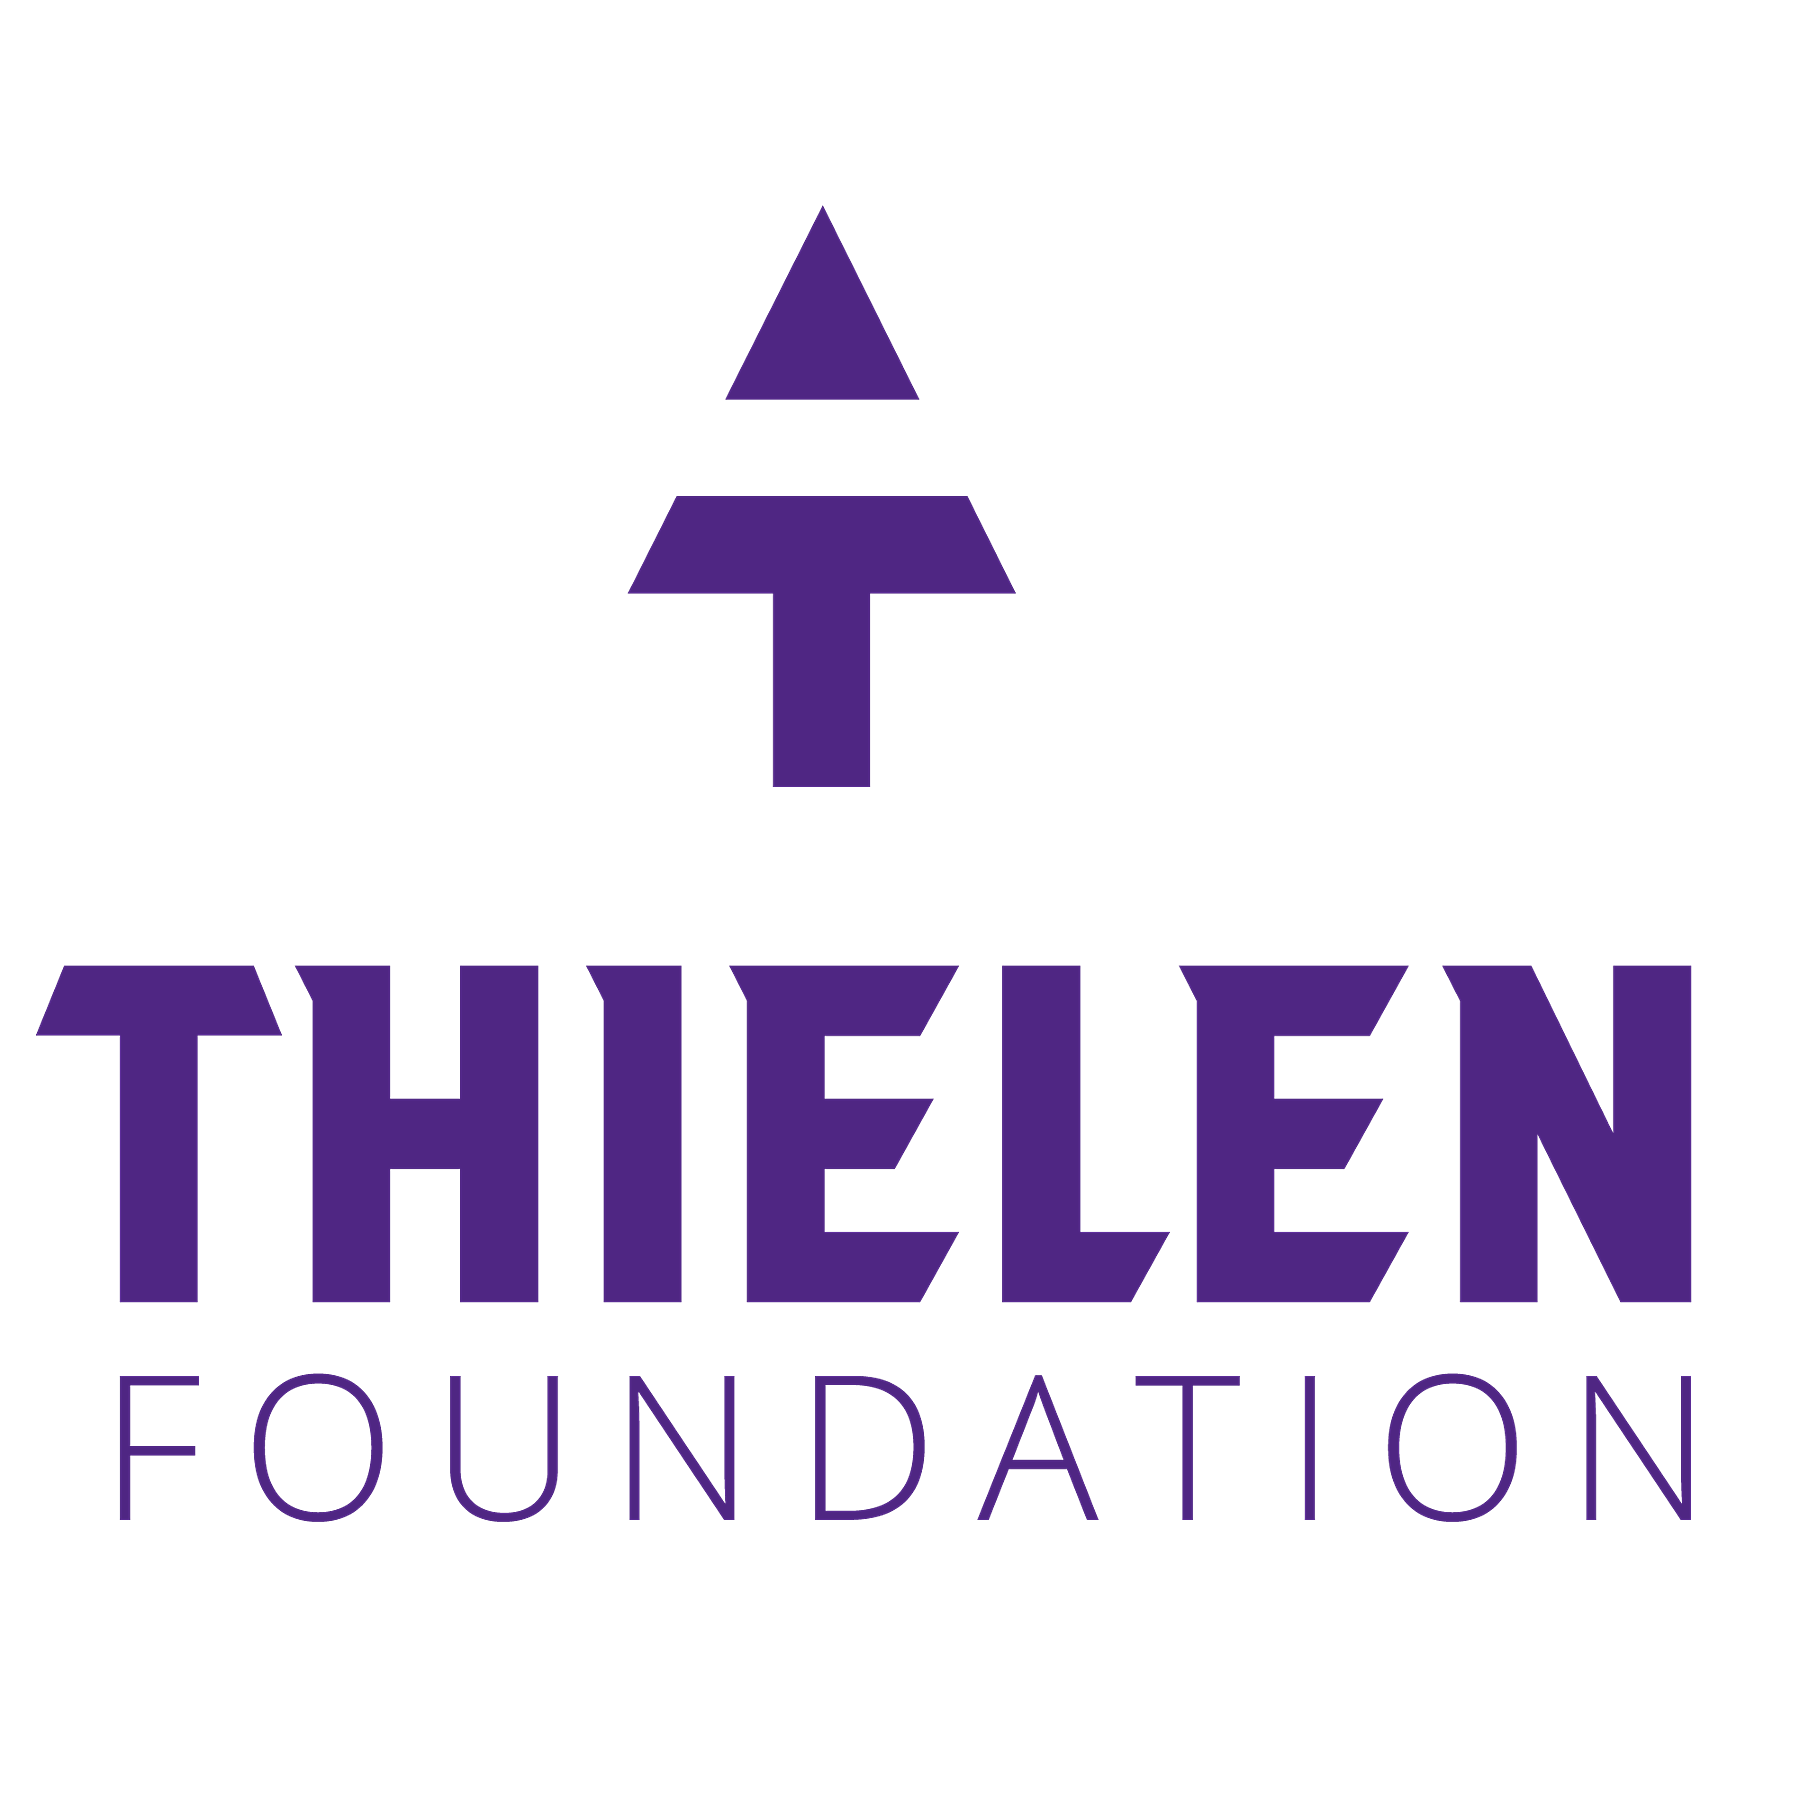 Thielen Foundation